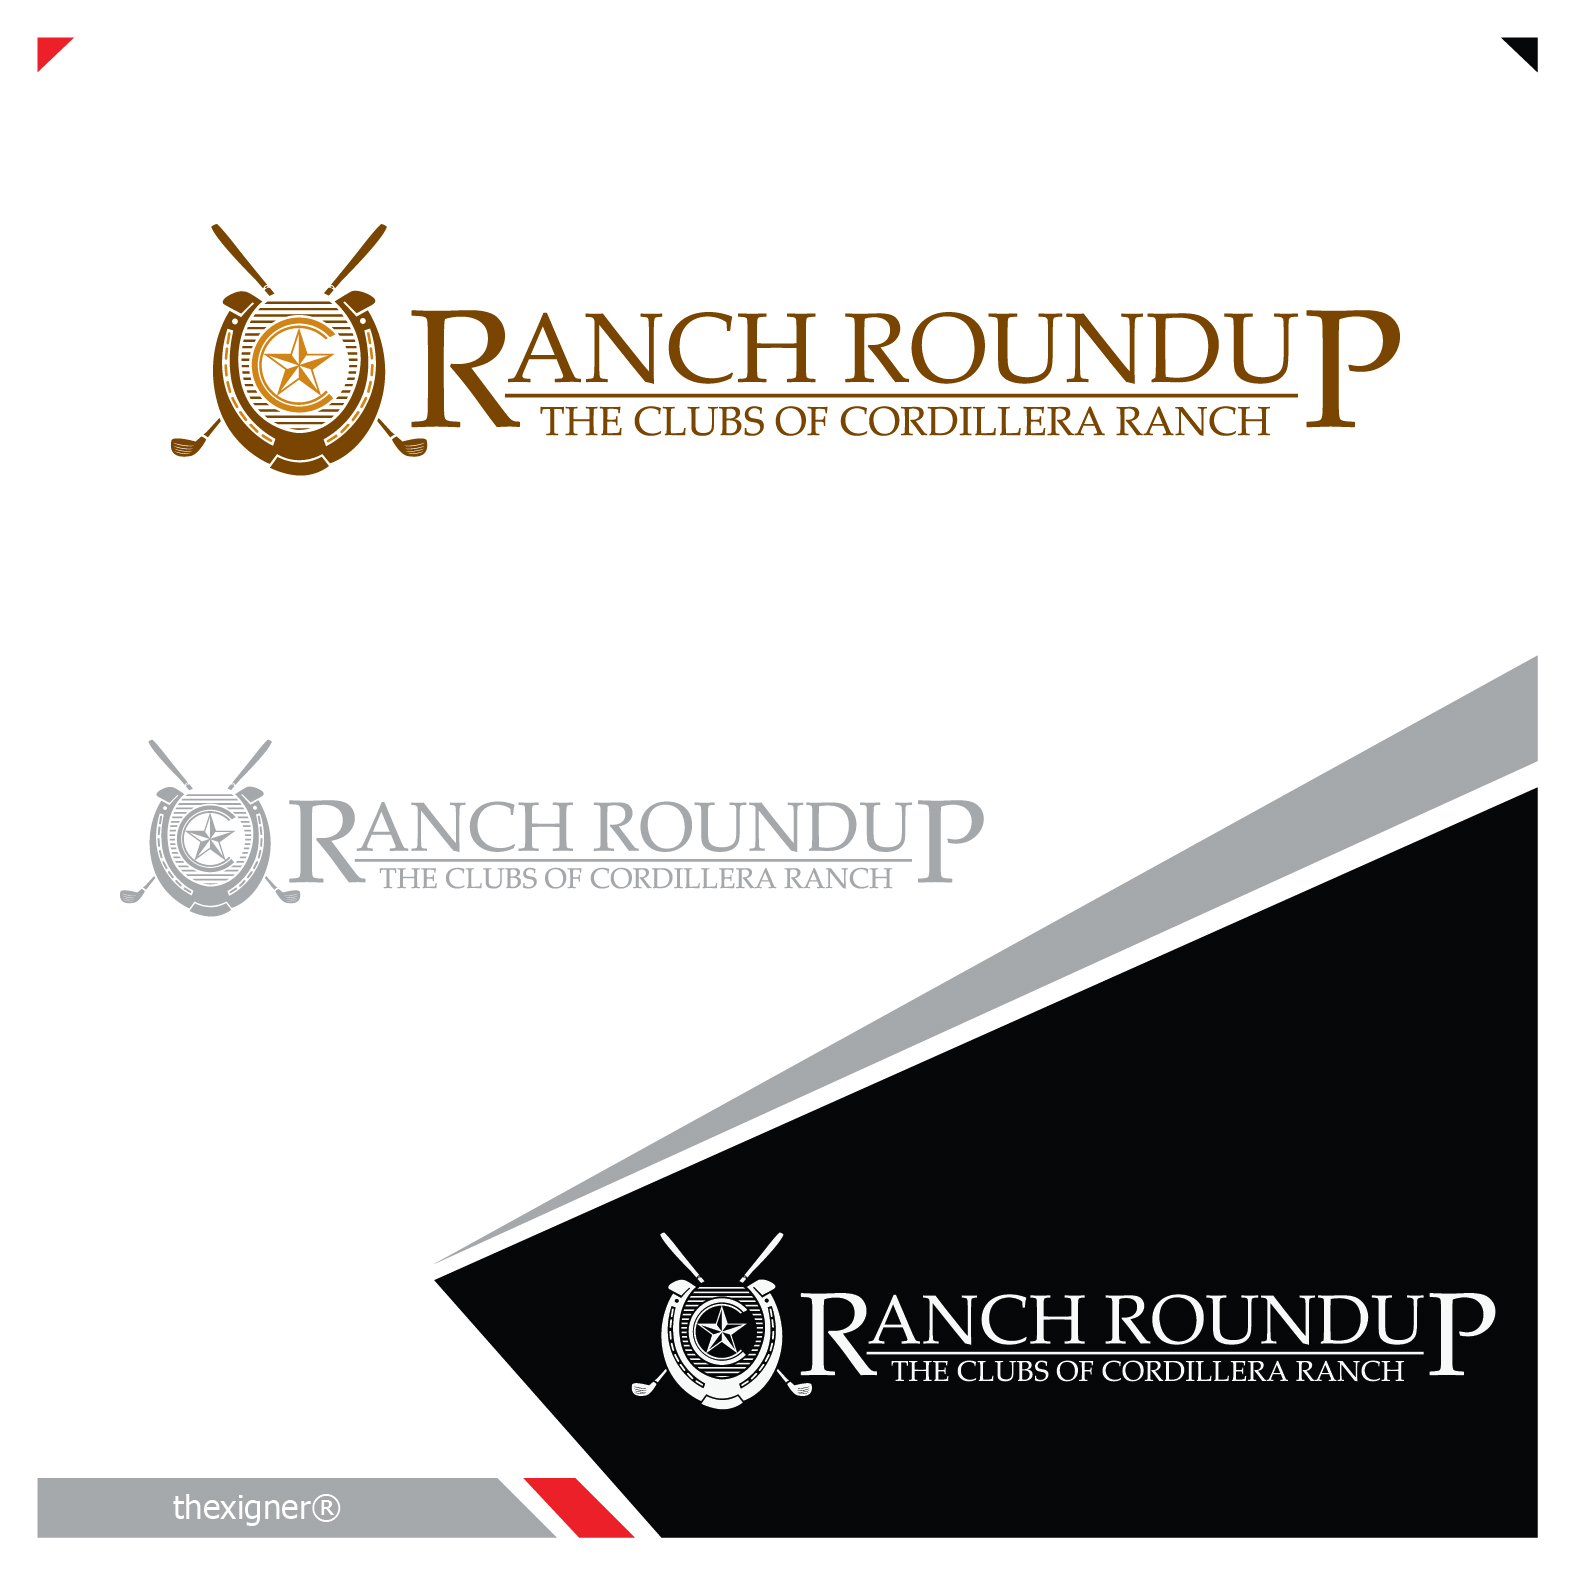 Logo Design by lagalag - Entry No. 23 in the Logo Design Contest Captivating Logo Design for Ranch Roundup.